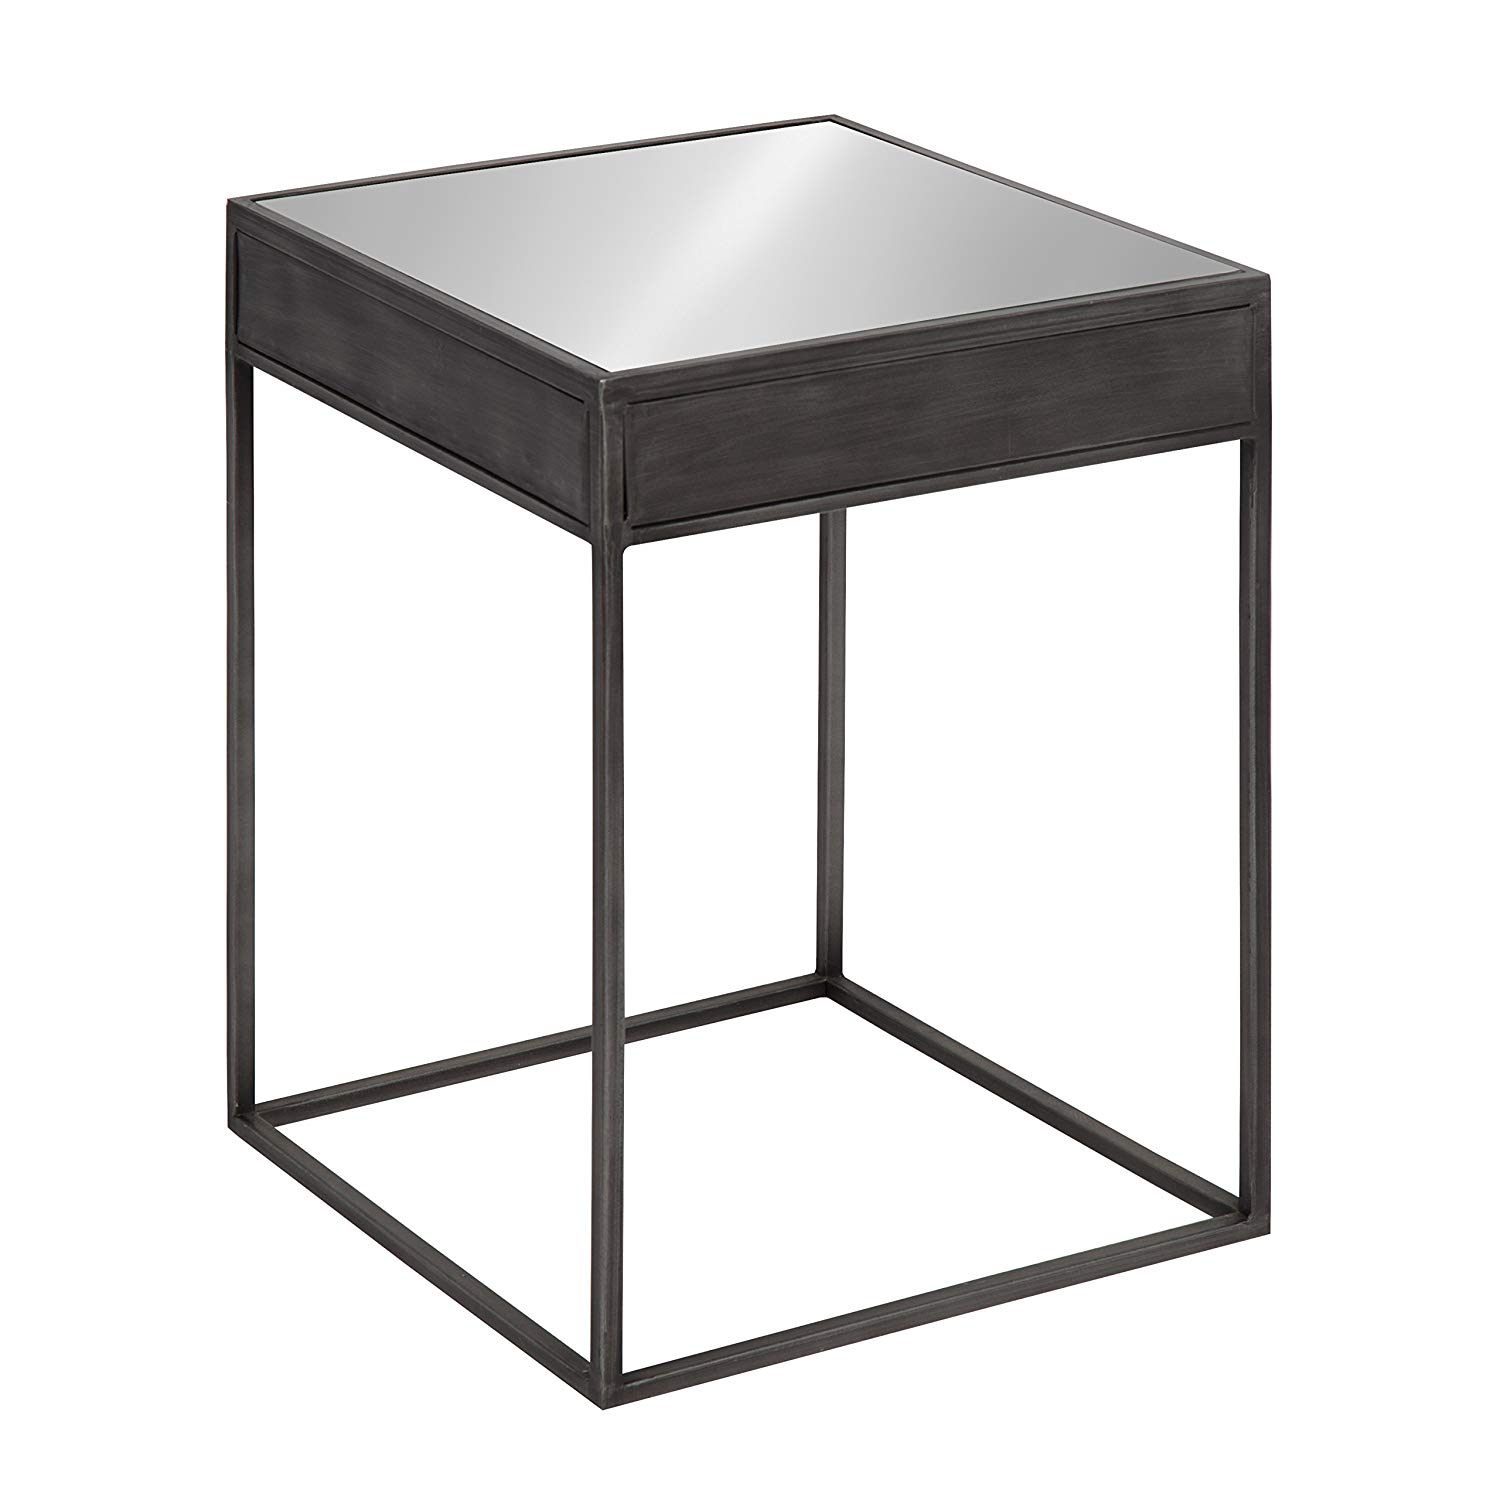 small metal accent table find side get quotations kate and laurel aleksand industrial modern square mirror end metallic bar legs threshold windham buffet inch round tablecloth